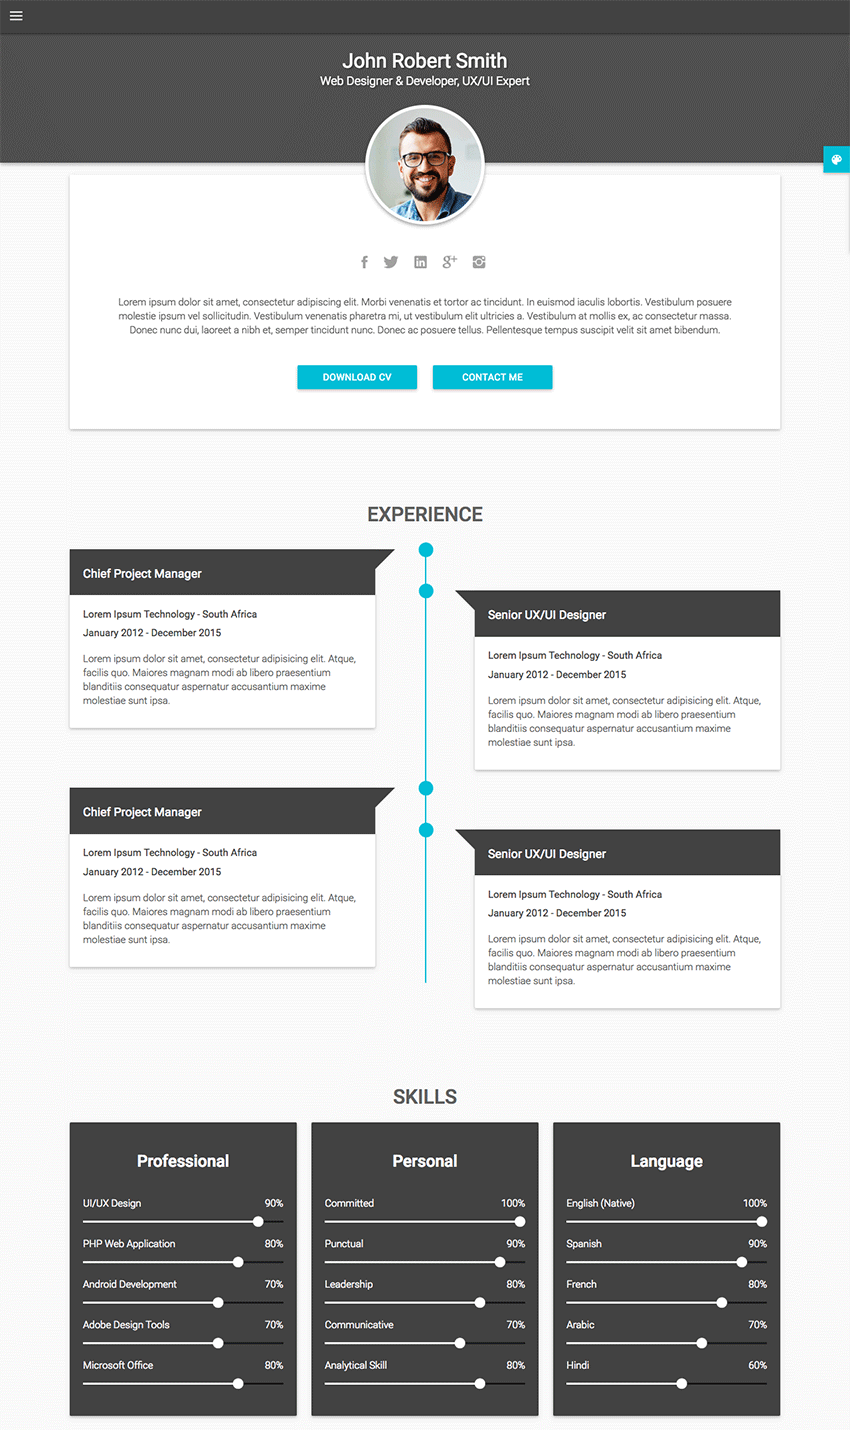 15 Best HTML Resume Templates for Awesome Personal Sites Best Home Design Html on simple text design, pie graph design, ms word design, page banner design, cvs design, dvb design, theming design, upload design, interactive experience design, interactive website design, spot color design, potoshop design, civil 3d design, web design, blockquote design, datatable design, openoffice design, company branding design, datagrid design, mets design,